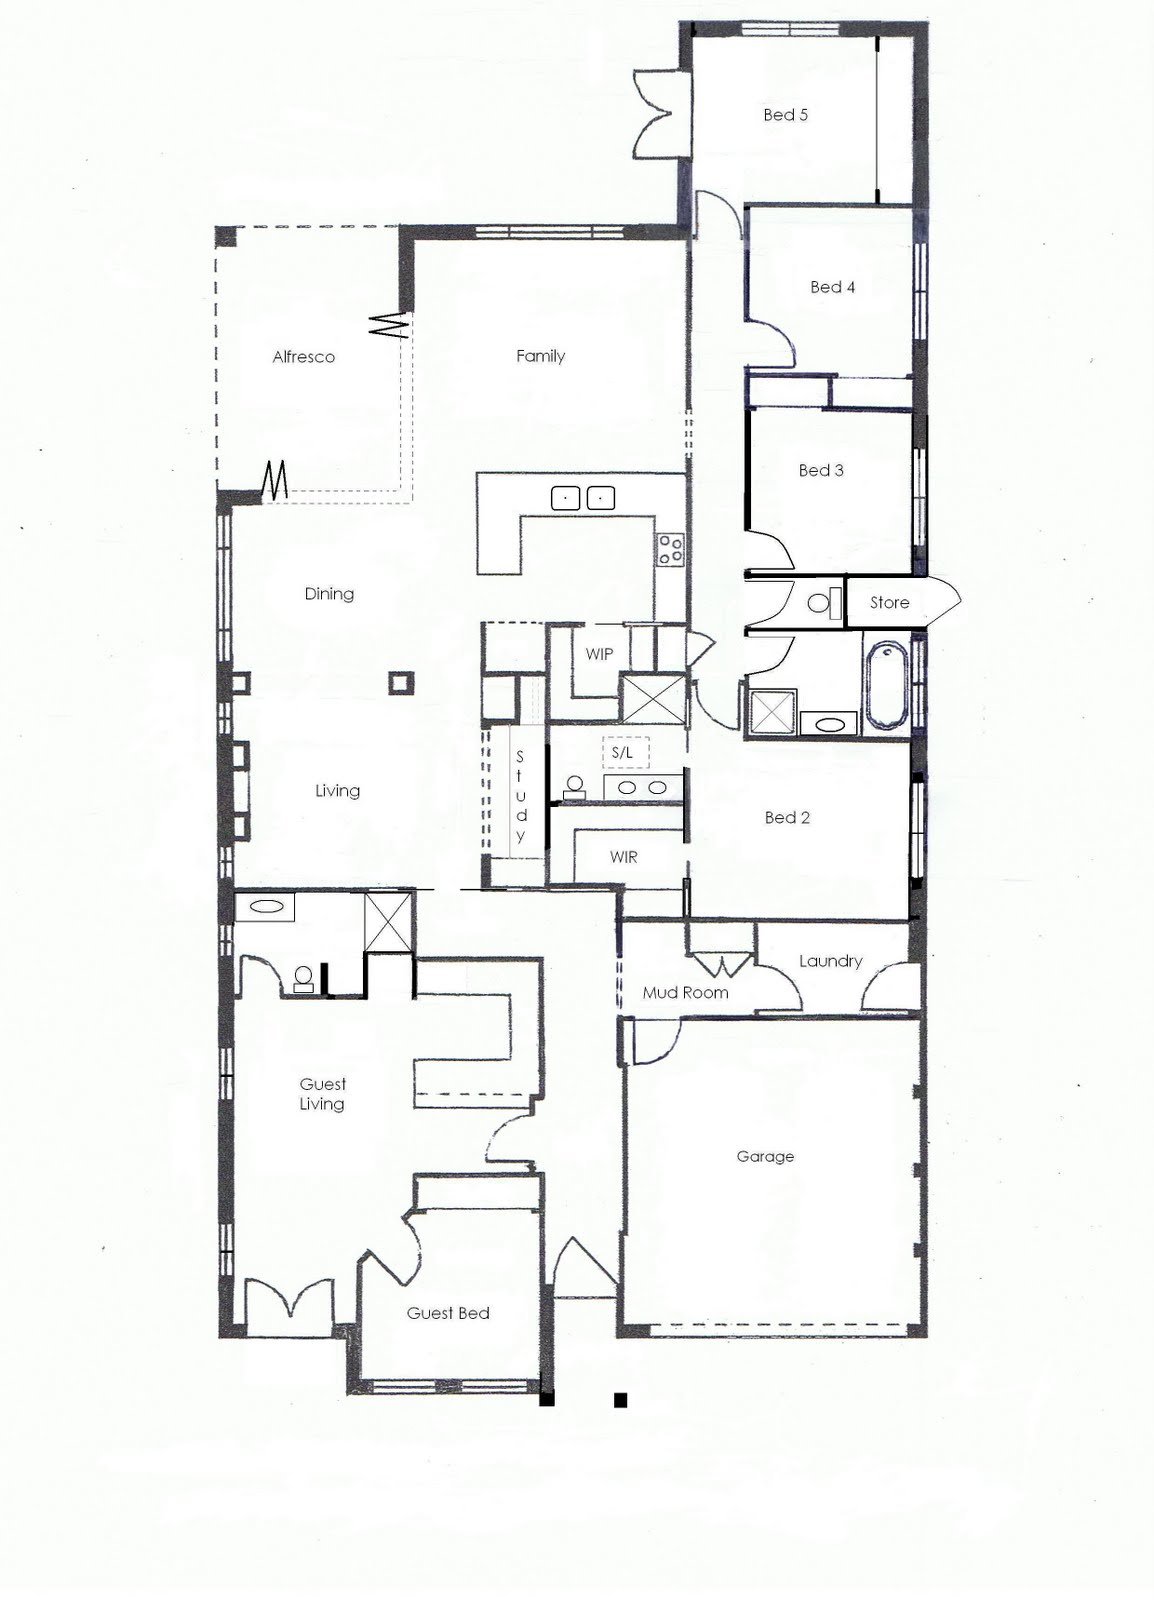 Keeping Up With The Joneses Floor Plan Sketch